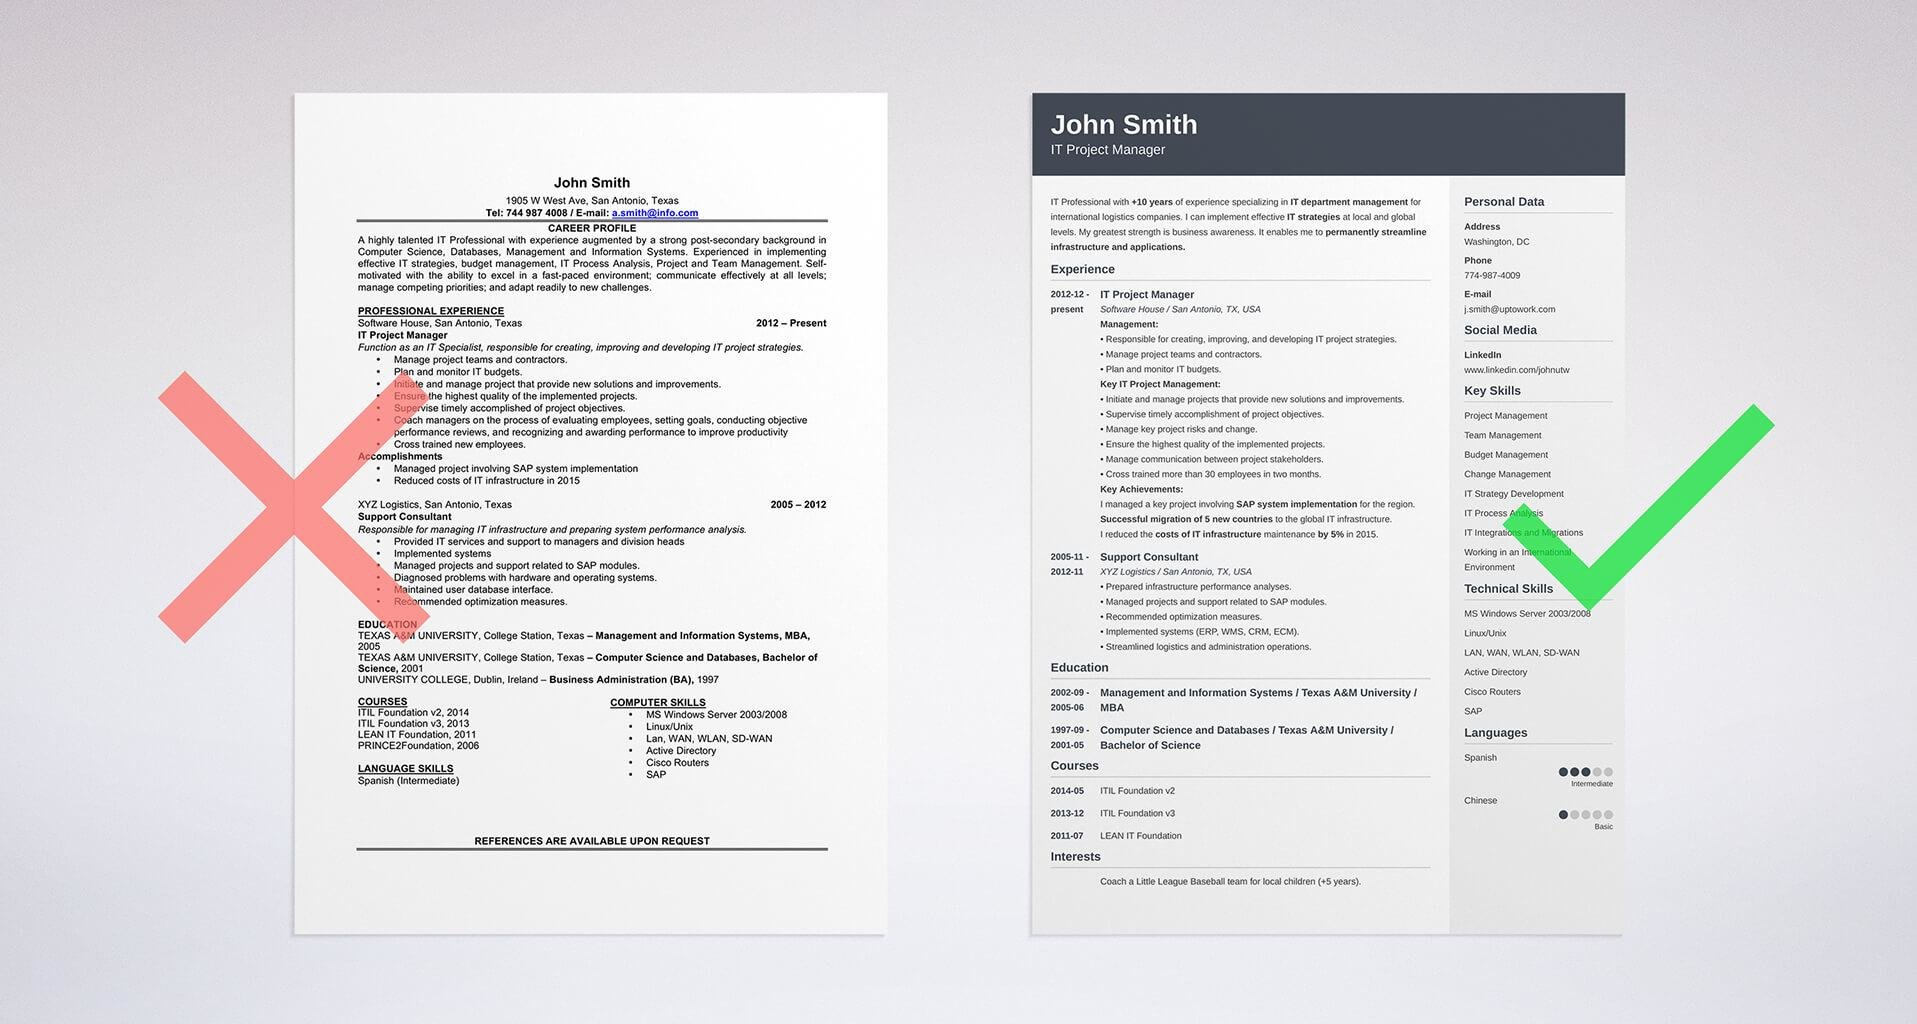 Best Resume Format: 10+ Samples for All Types of Resumes